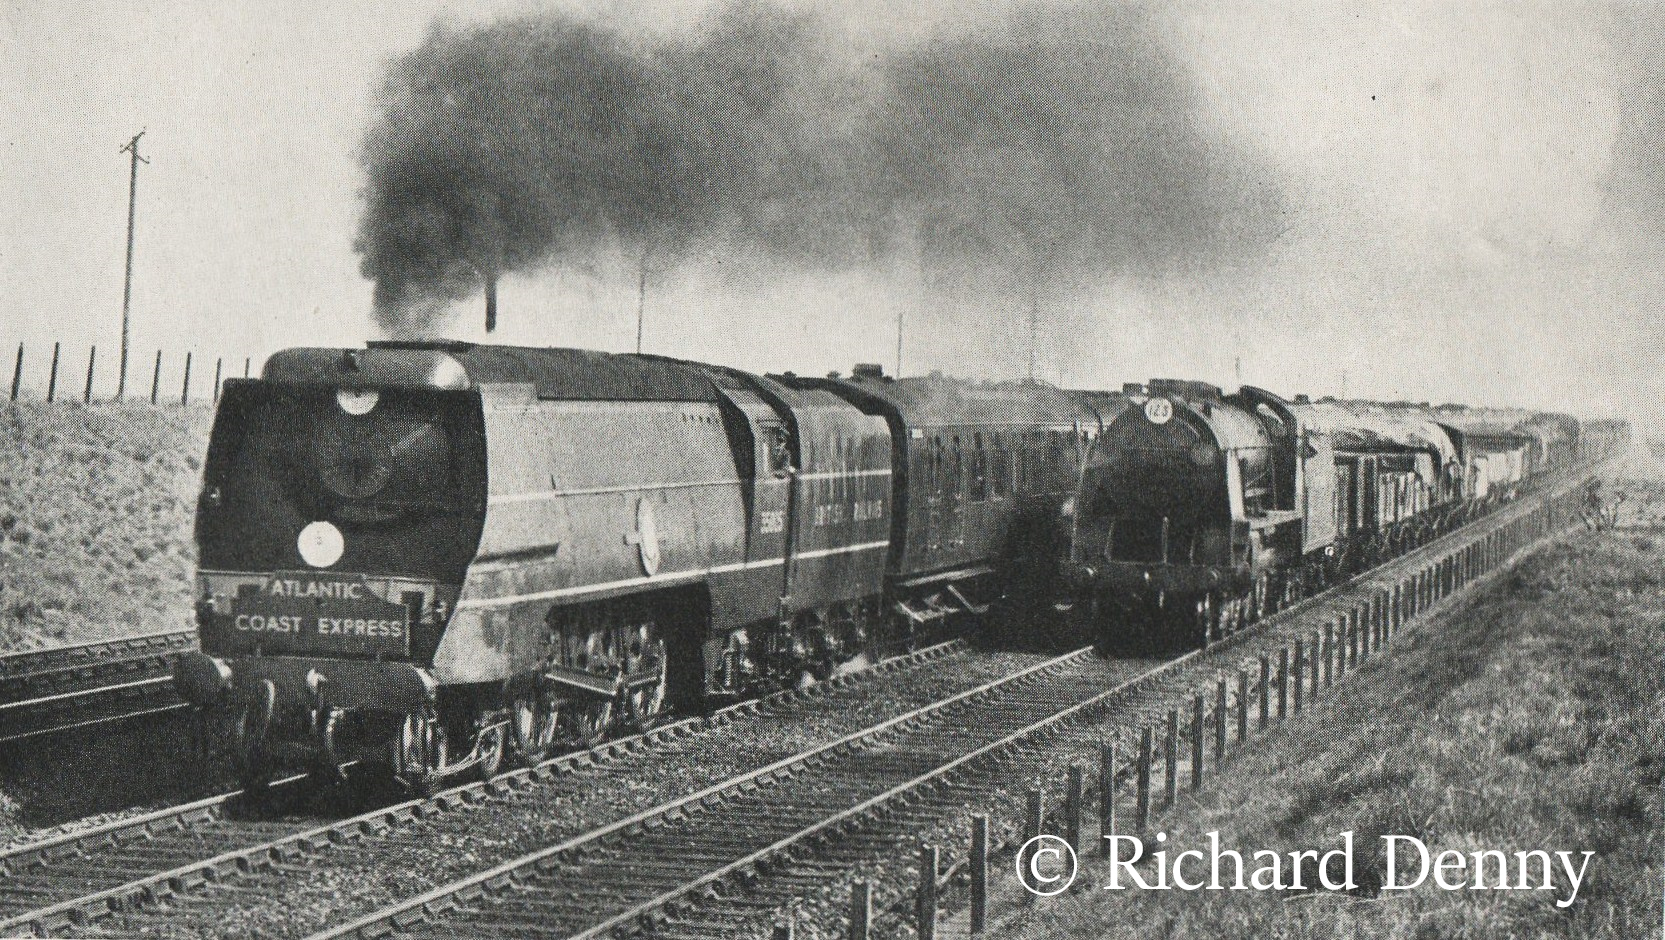 35005 Canadian Pacific hauling the Atlantic Coast Express near Basingstoke - 1950.jpg